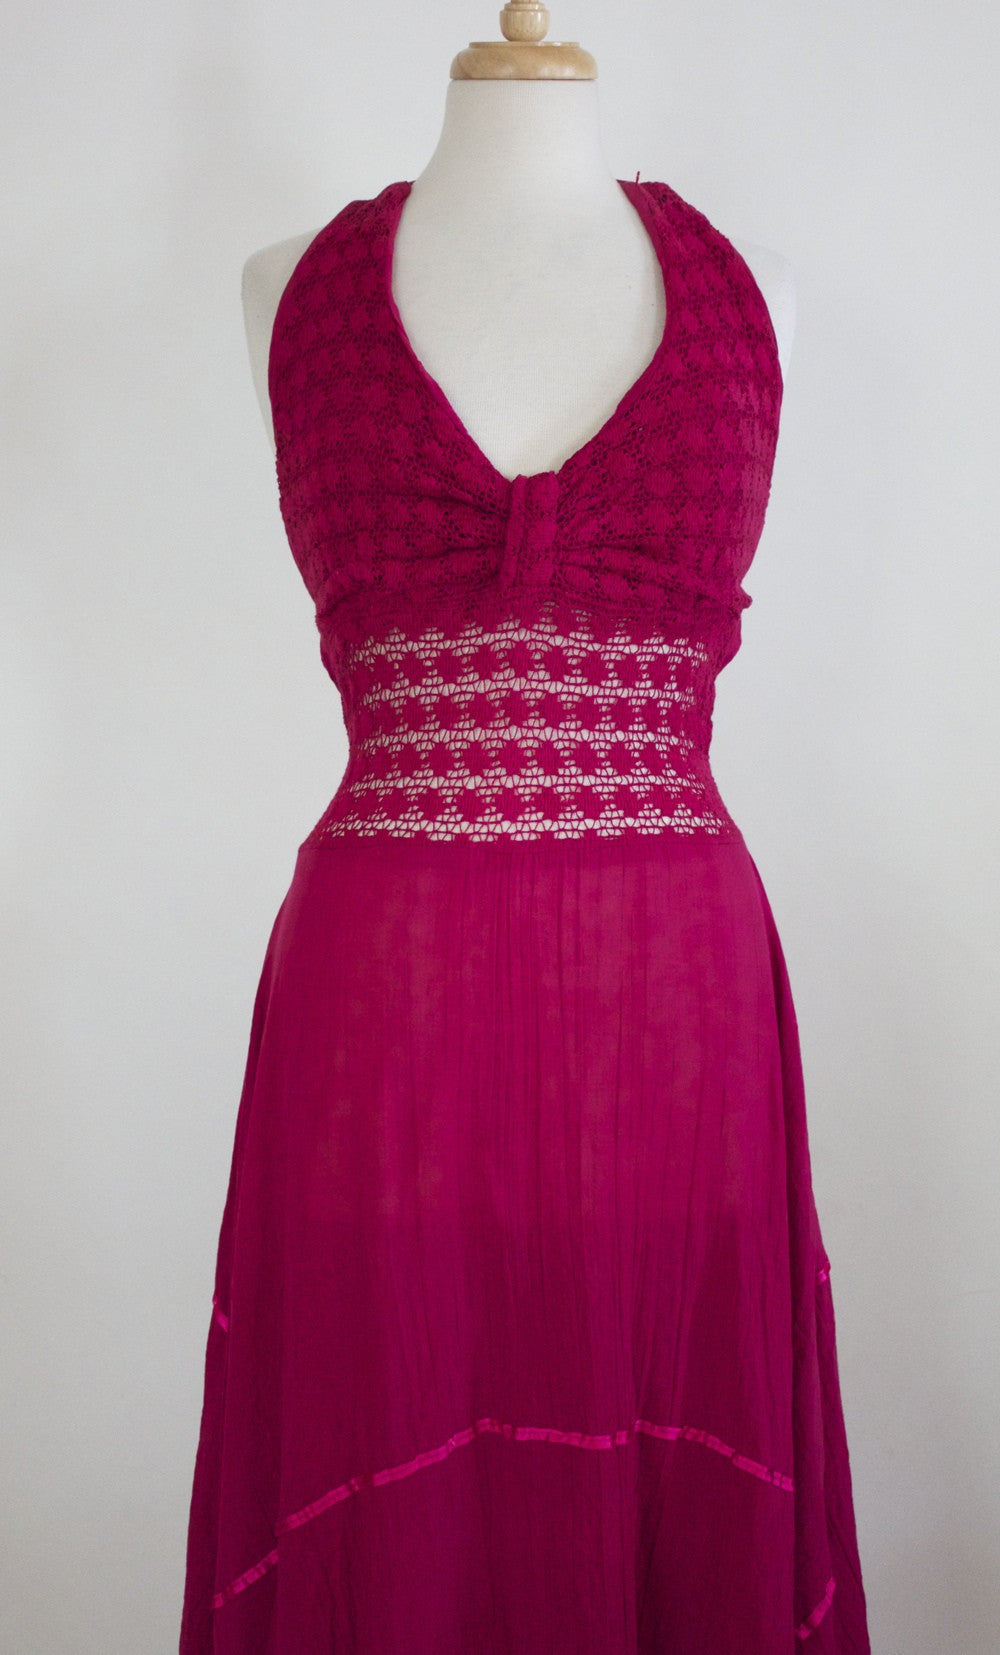 70s crochet halter dress